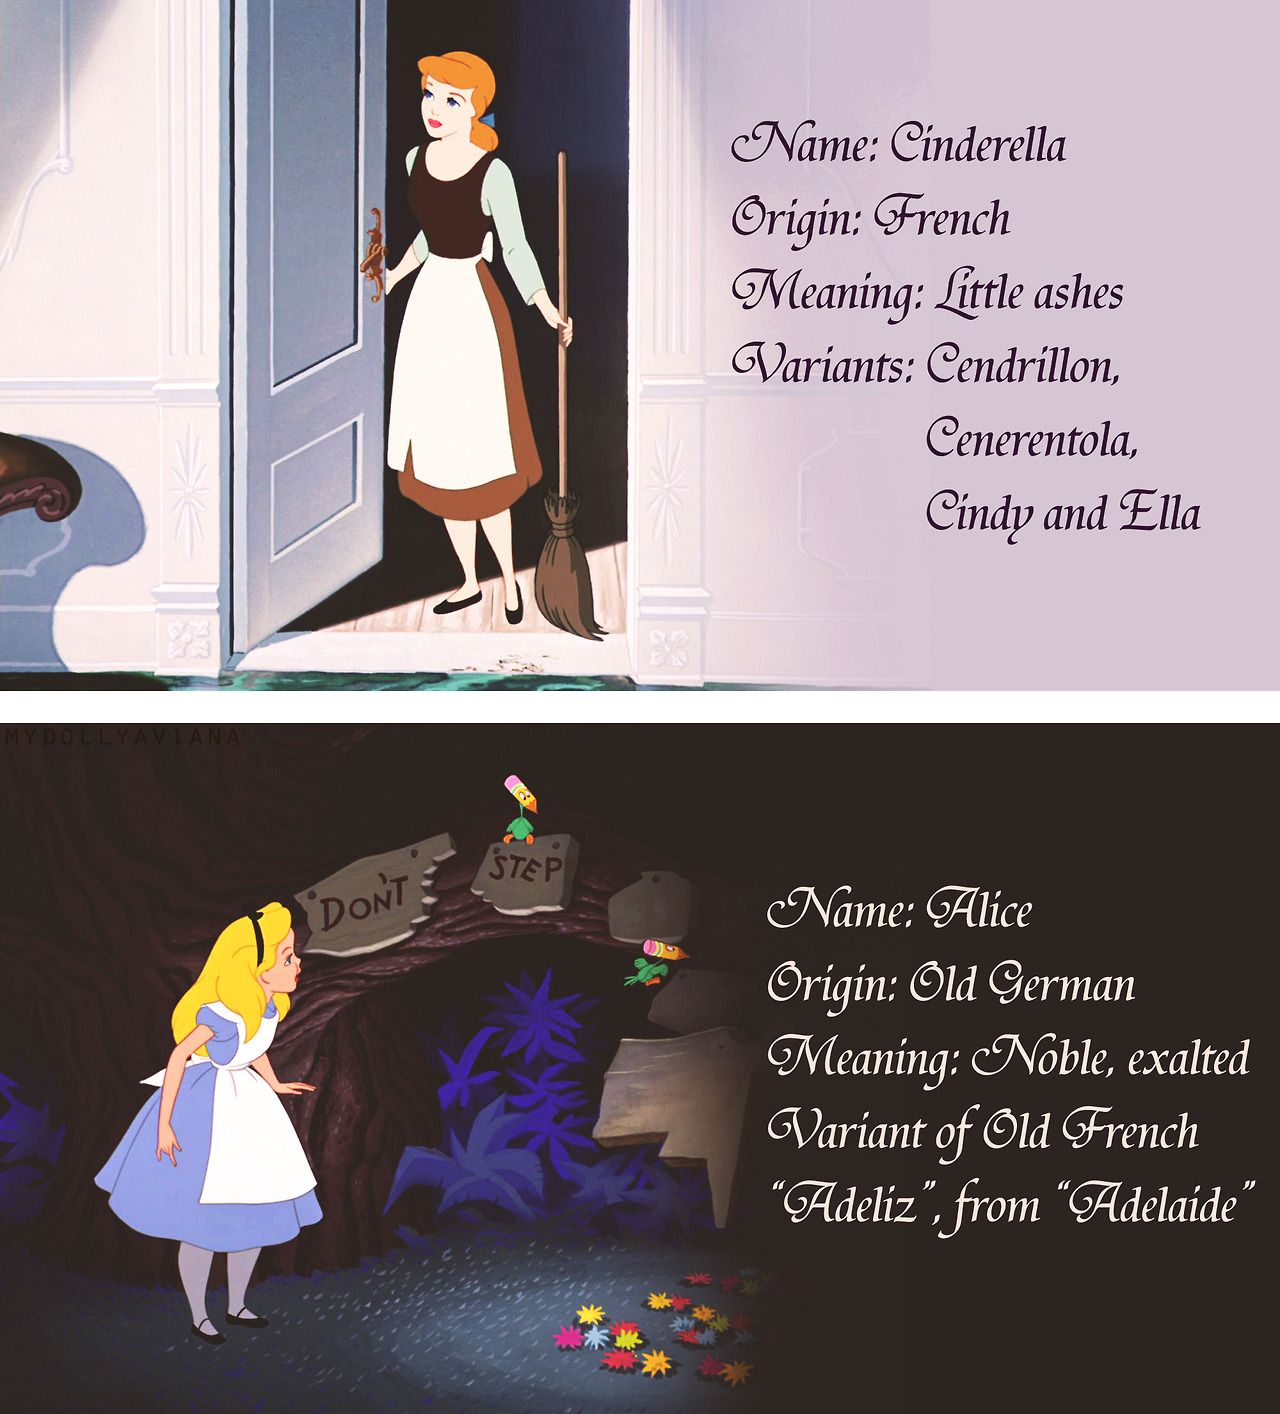 The meaning of Alices name, its origin and character of a person with that name